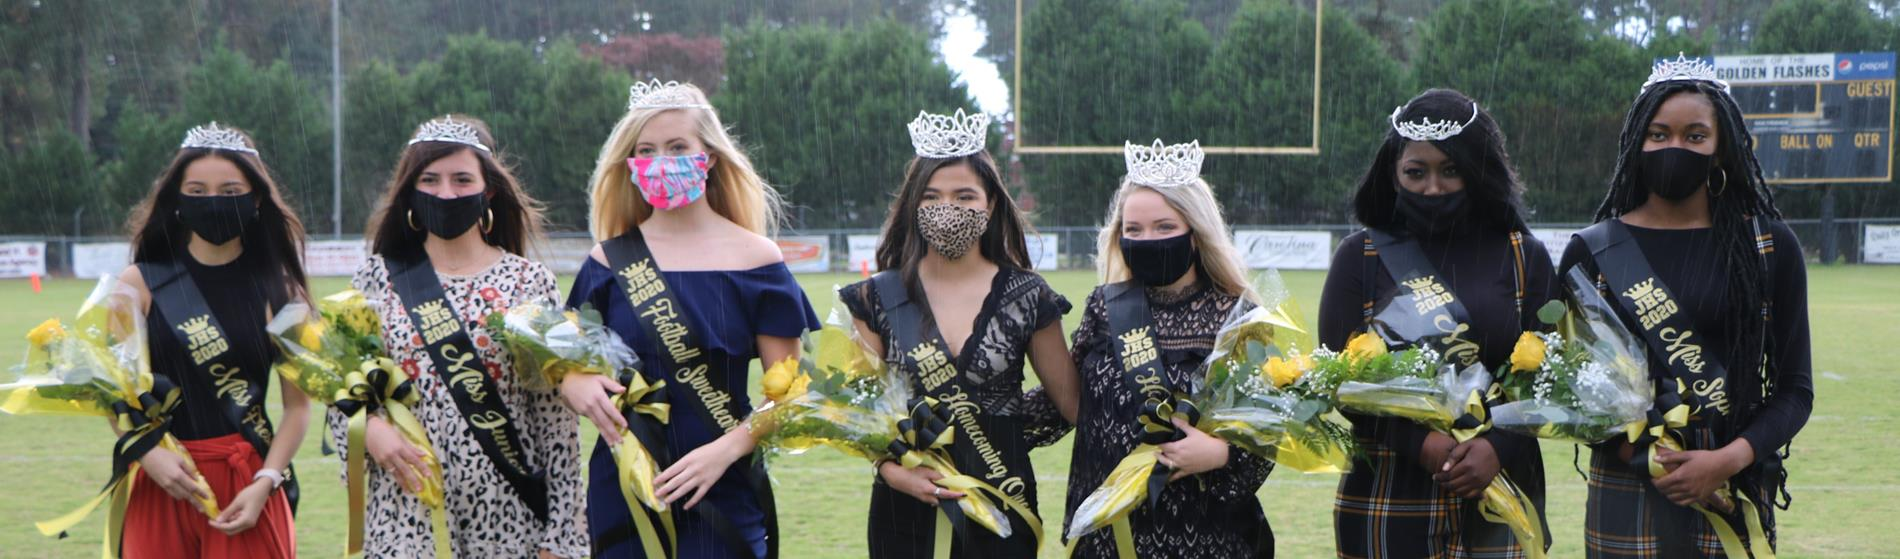 Homecoming Queens 2020